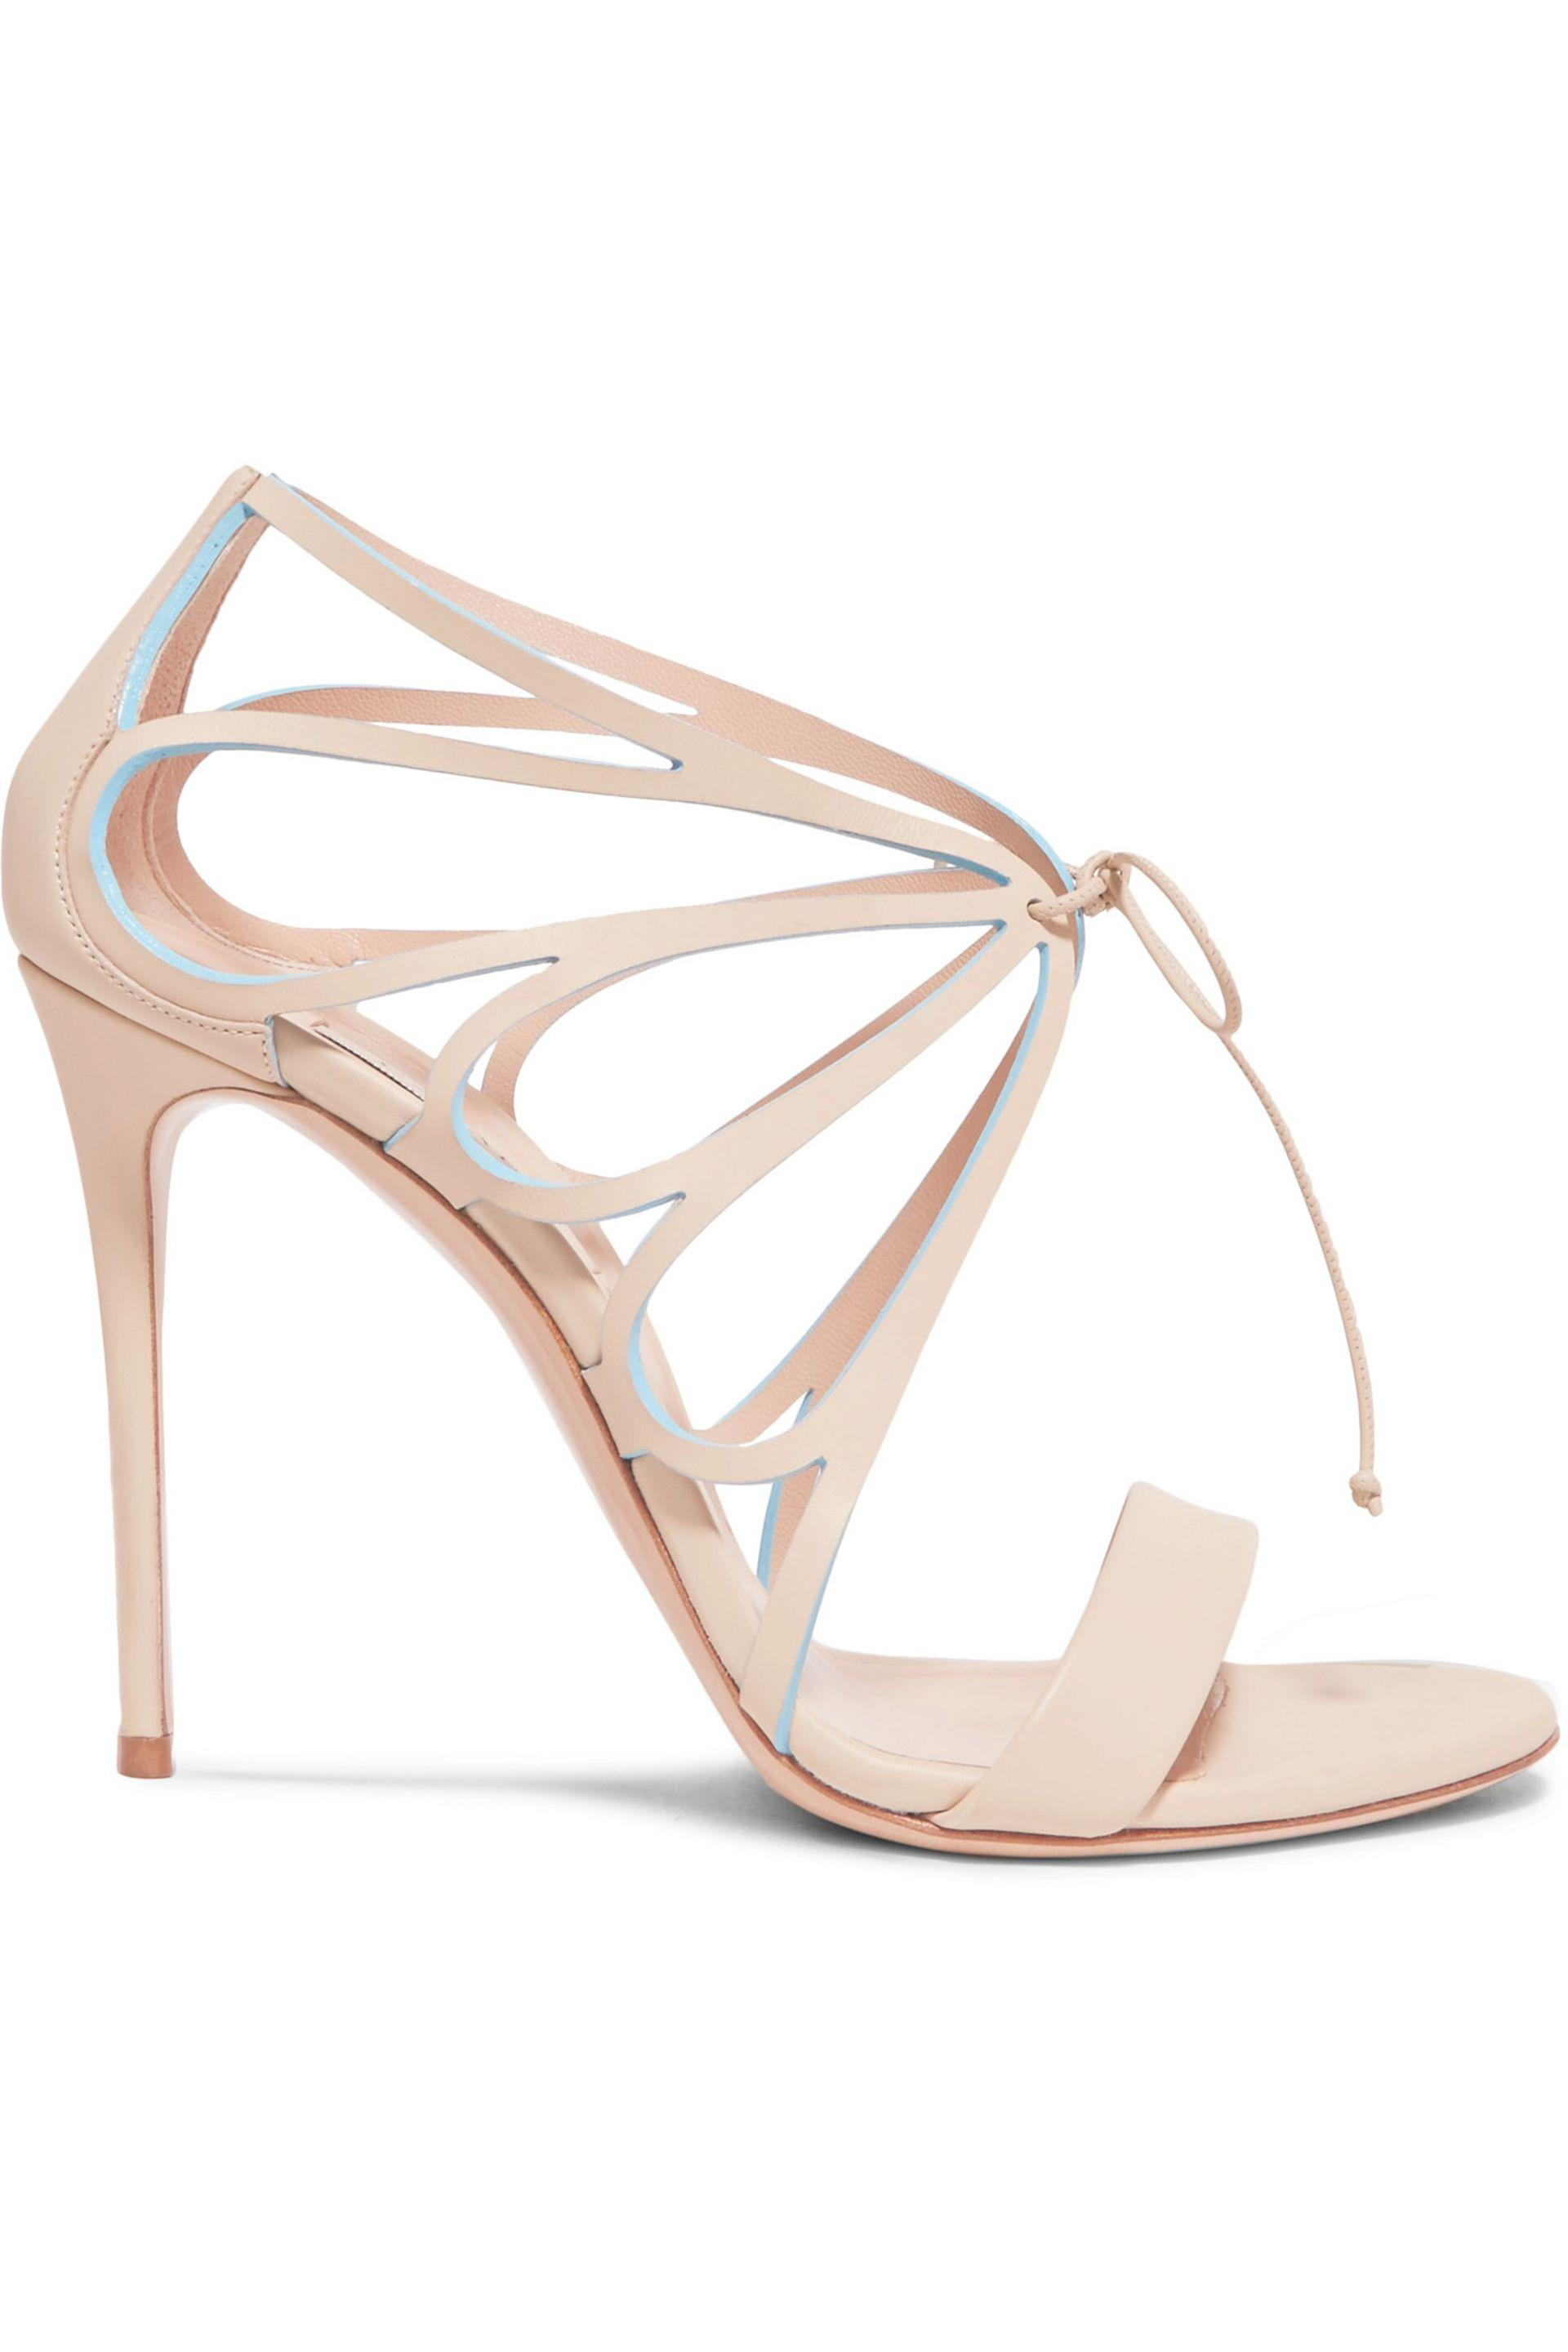 64fe848eb1c Casadei Vittoriale Cutout Leather Sandals Beige in Natural - Lyst